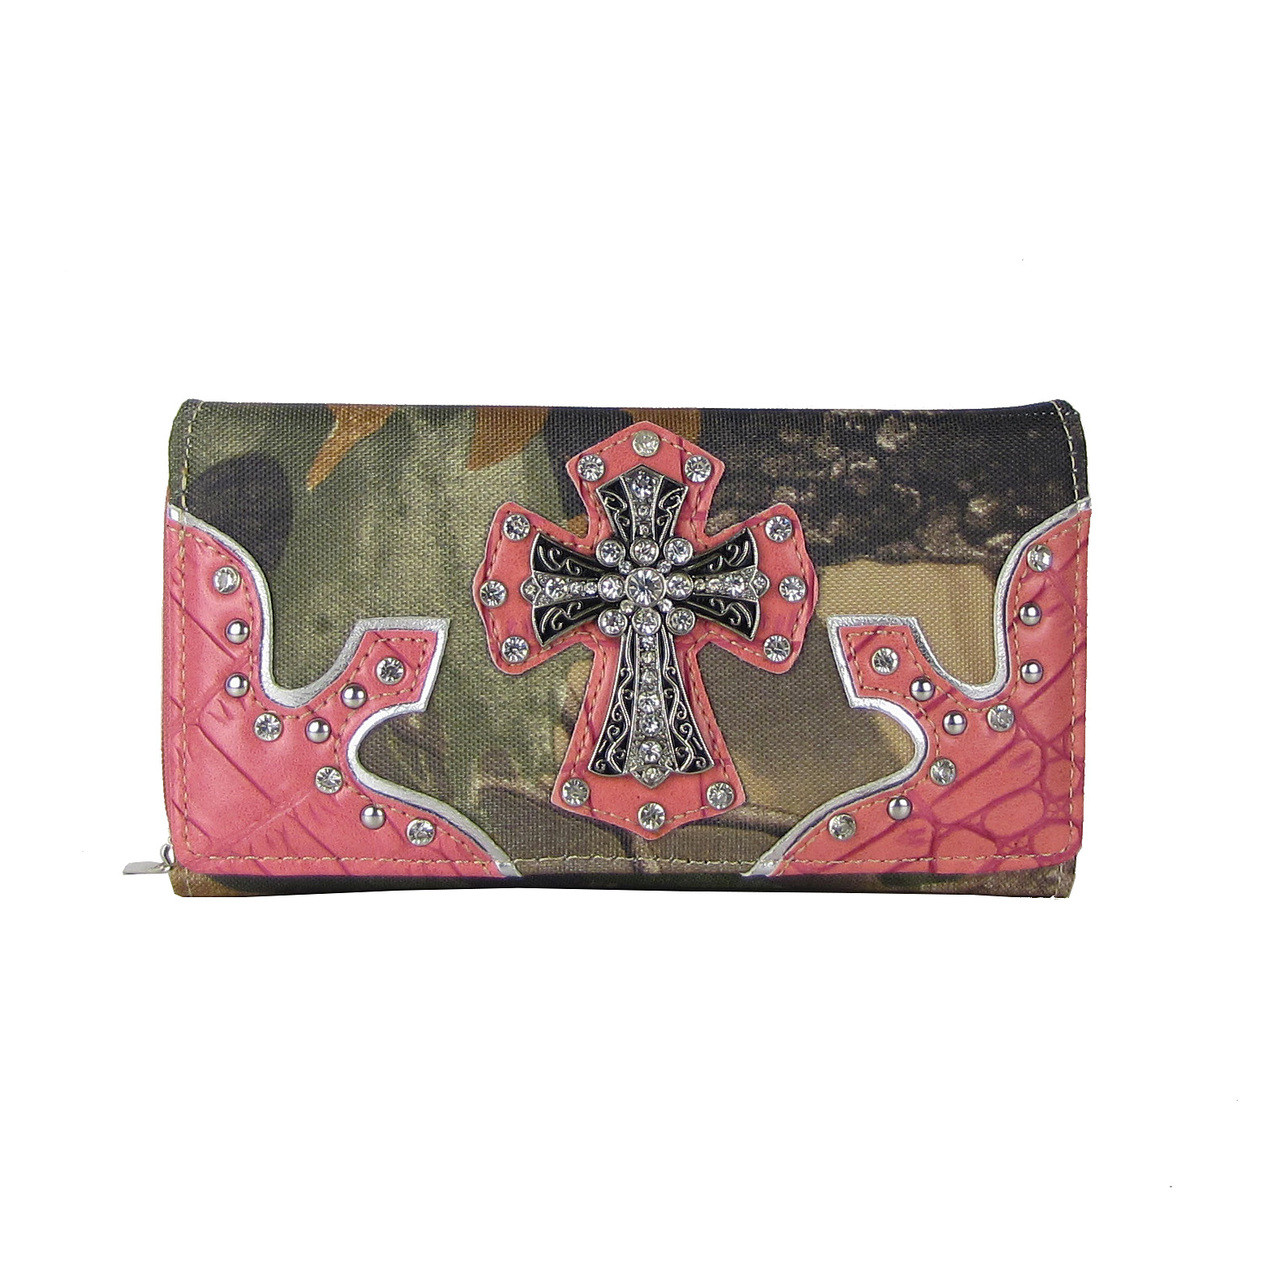 PINK WESTERN STUDDED MOSSY CAMO CROSS LOOK CHECKBOOK WALLET CB1-0415PNK